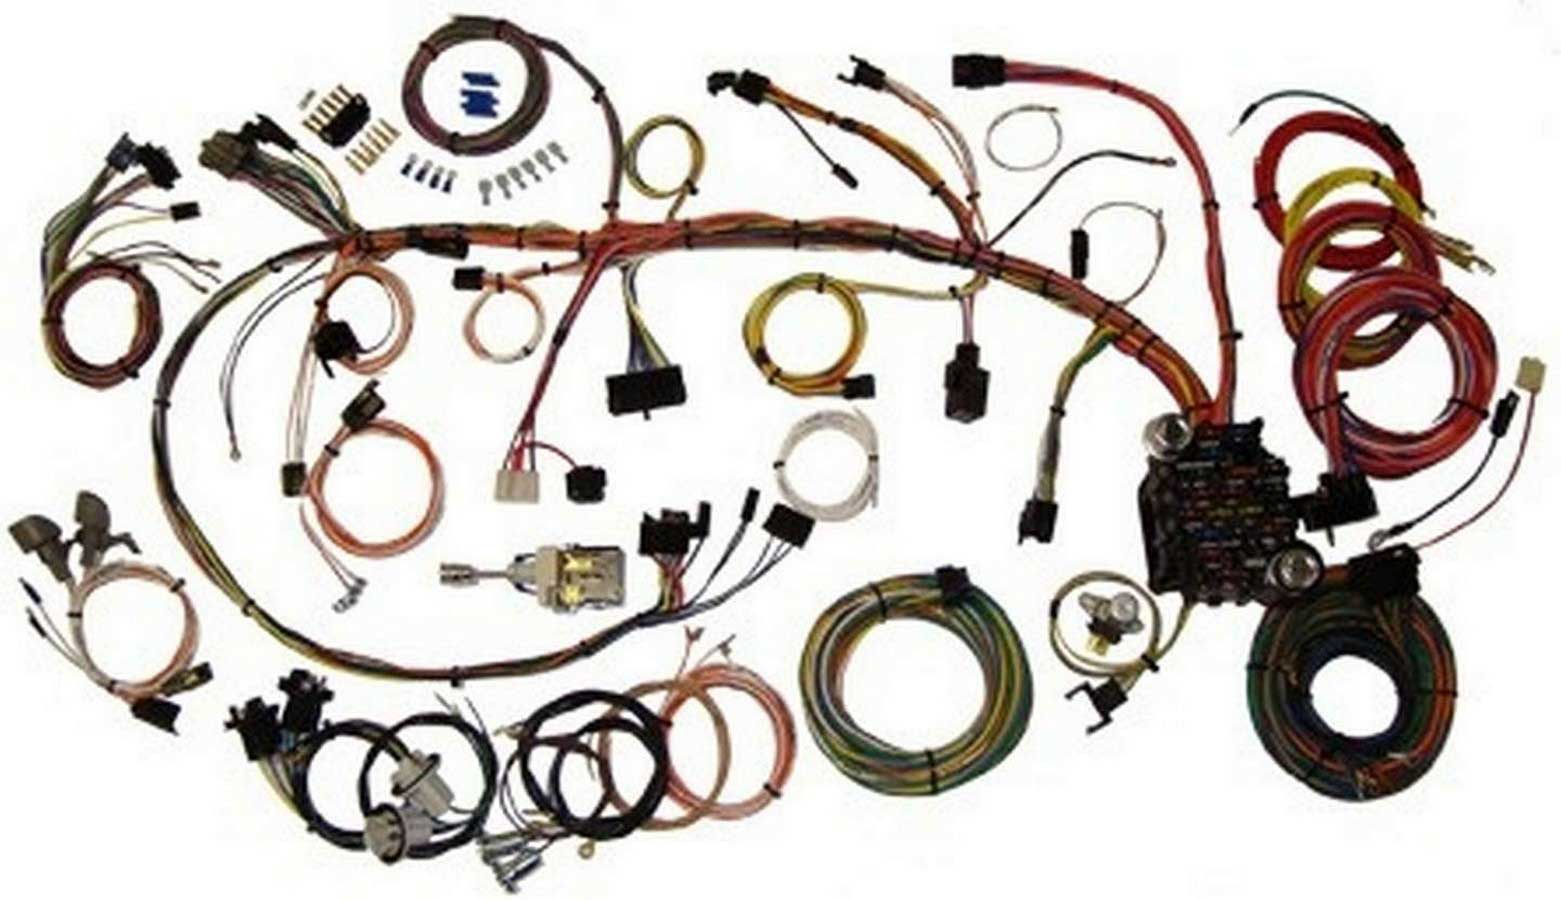 Cowl Induction Wiring Diagram Together With 68 Camaro Wiring Harness